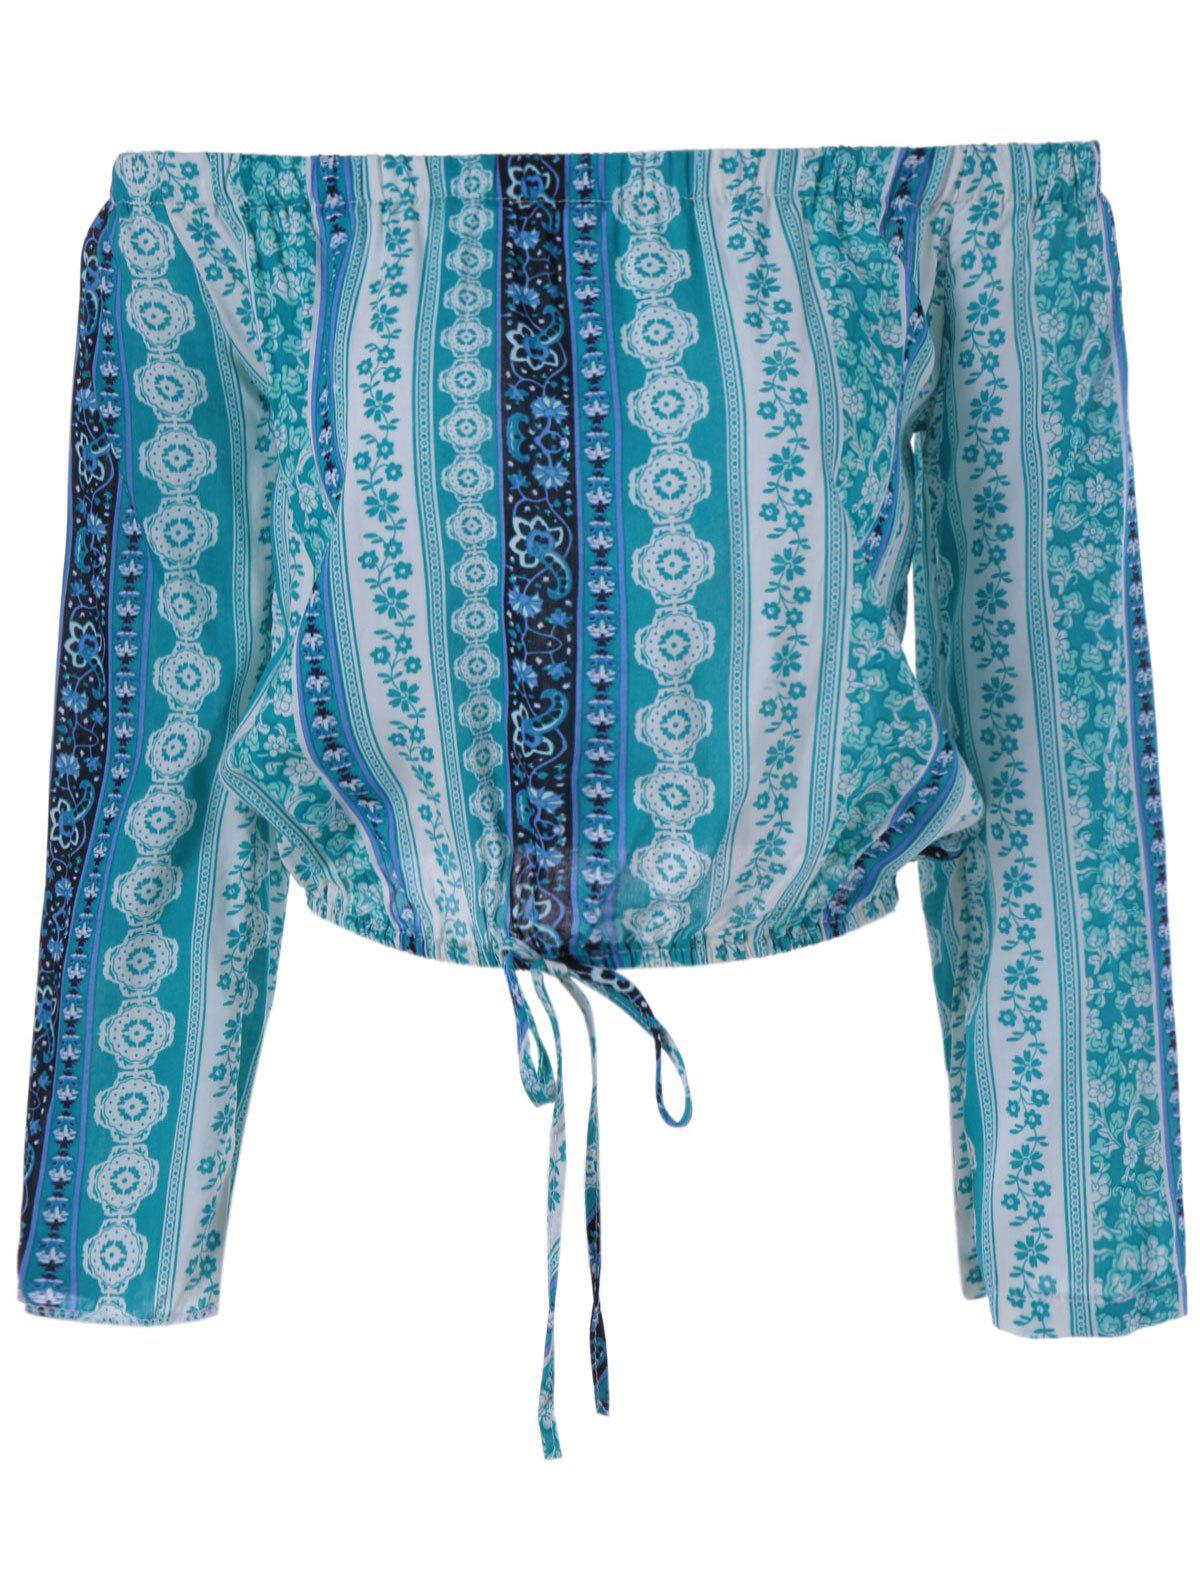 Ethnic Style Cropped Off The Shoulder Tie Nine-Minute Sleeves Top For WomenWomen<br><br><br>Size: ONE SIZE(FIT SIZE XS TO M)<br>Color: VERDIGRIS